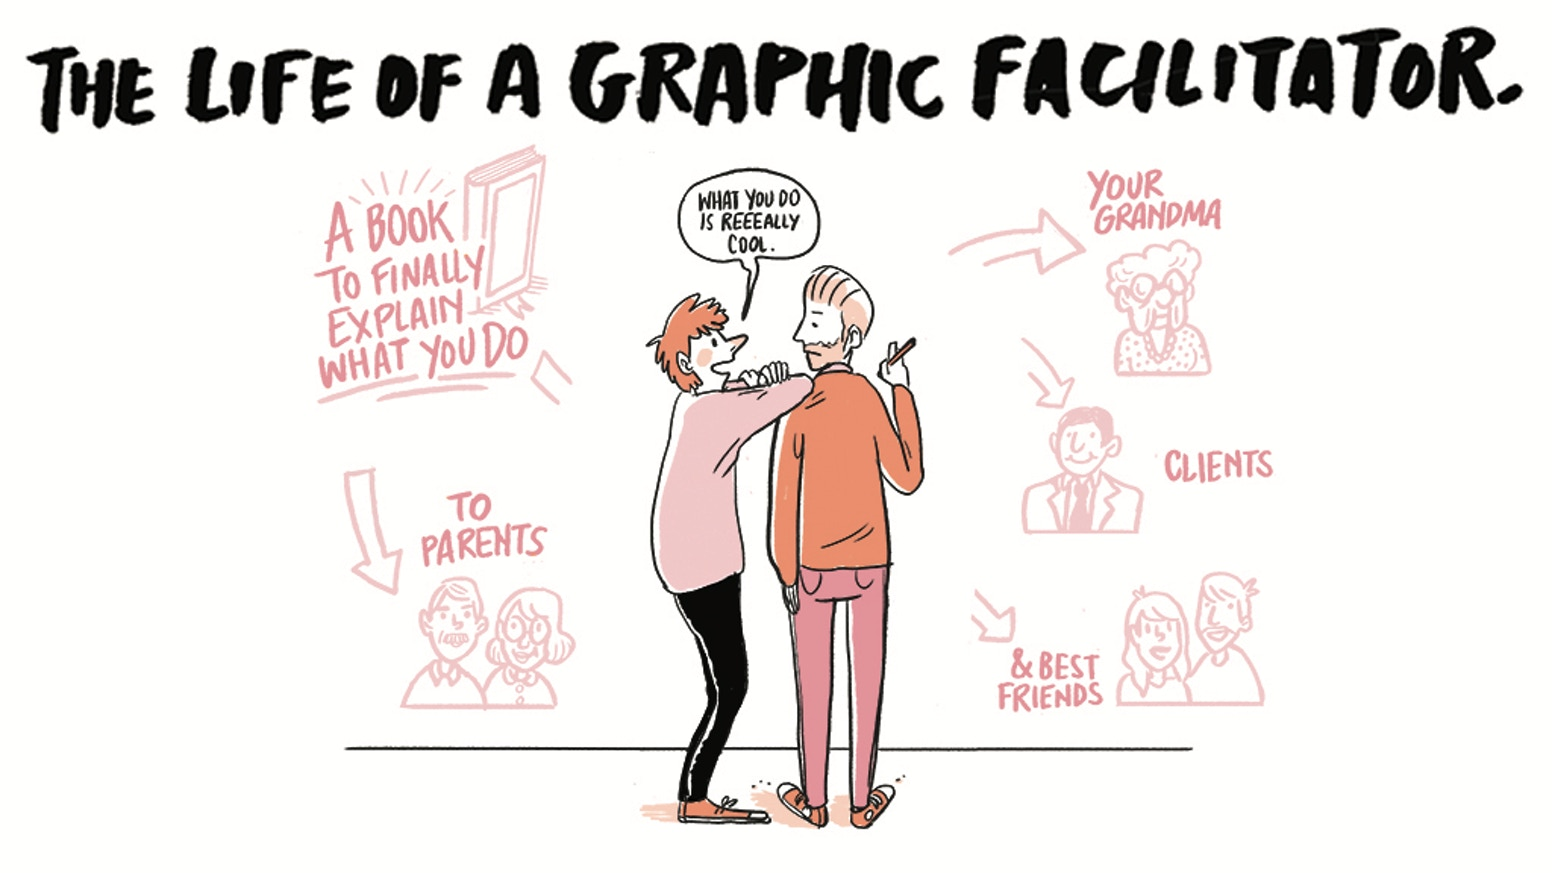 A simple and funny comic book to explain what a Graphic Facilitator does.